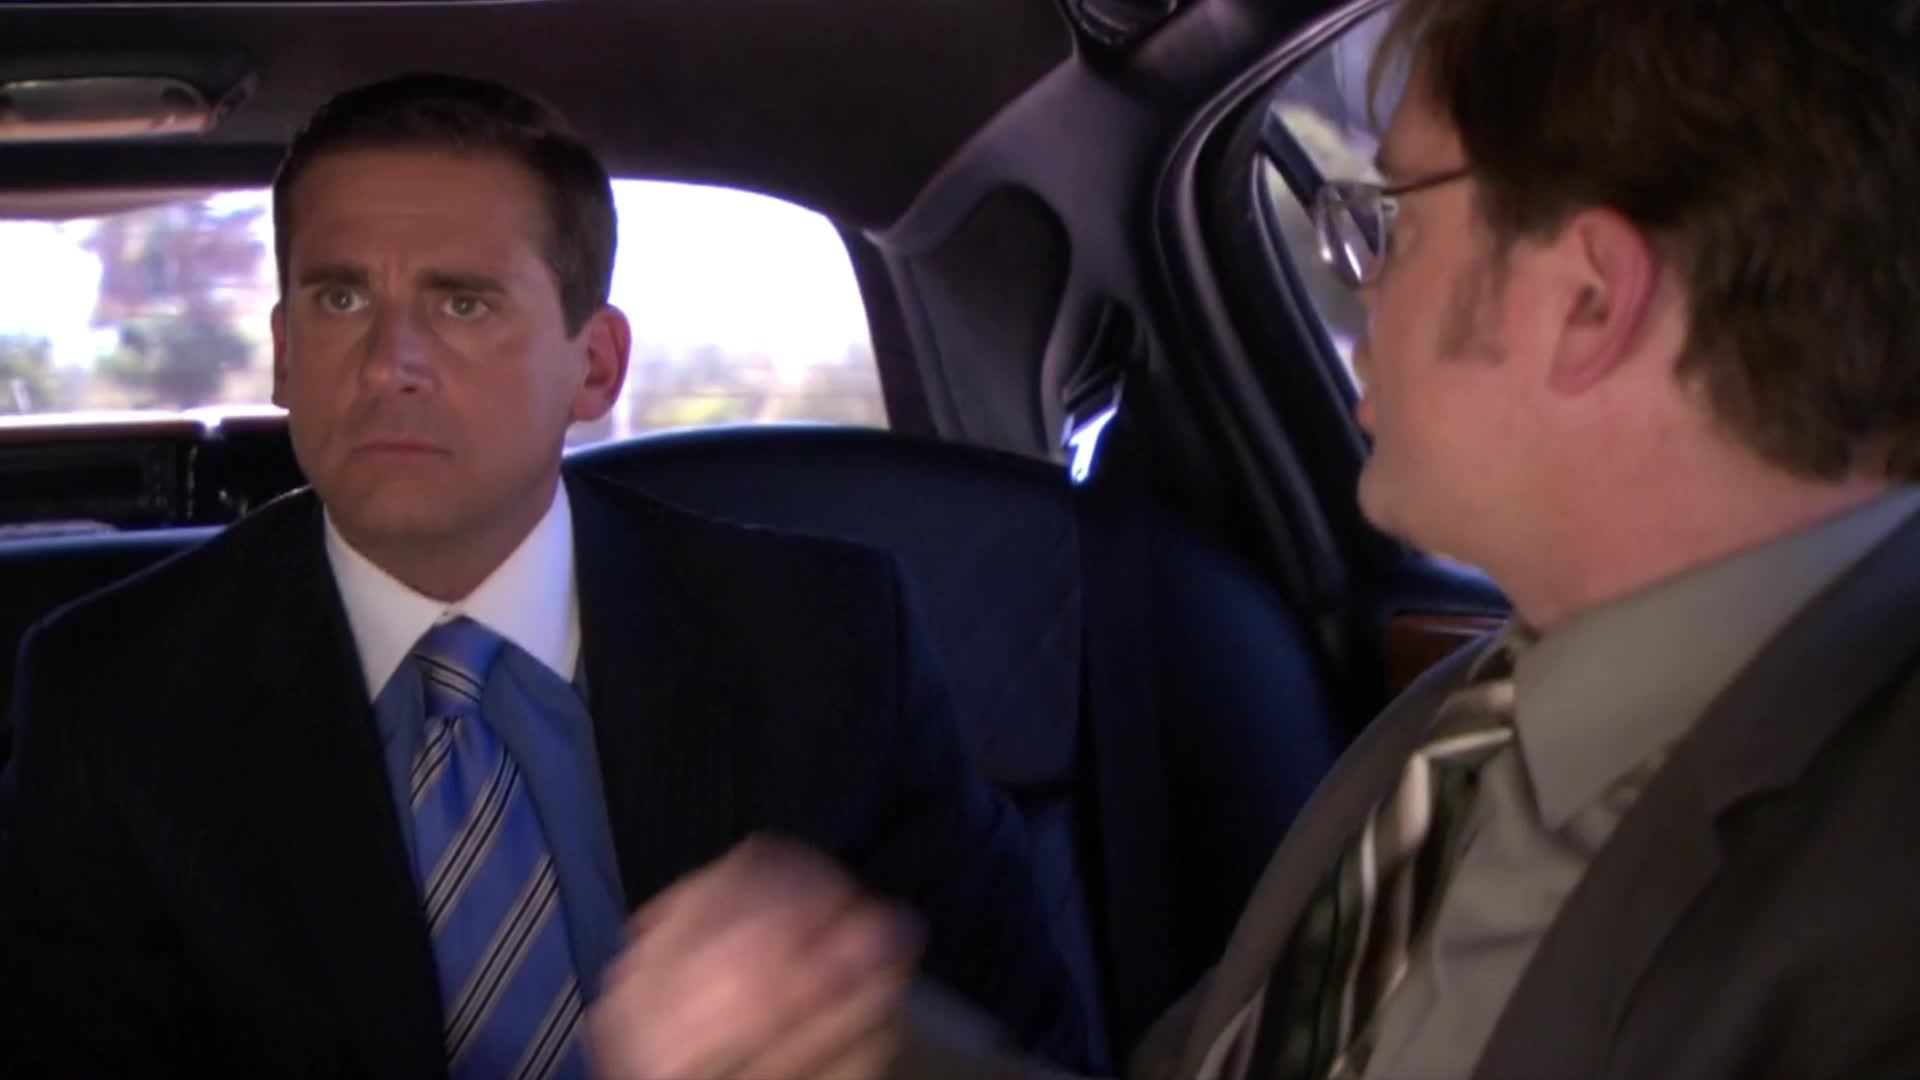 funnygifs, hifw, theoffice, How it feels when your seat buddy says something stupid GIFs